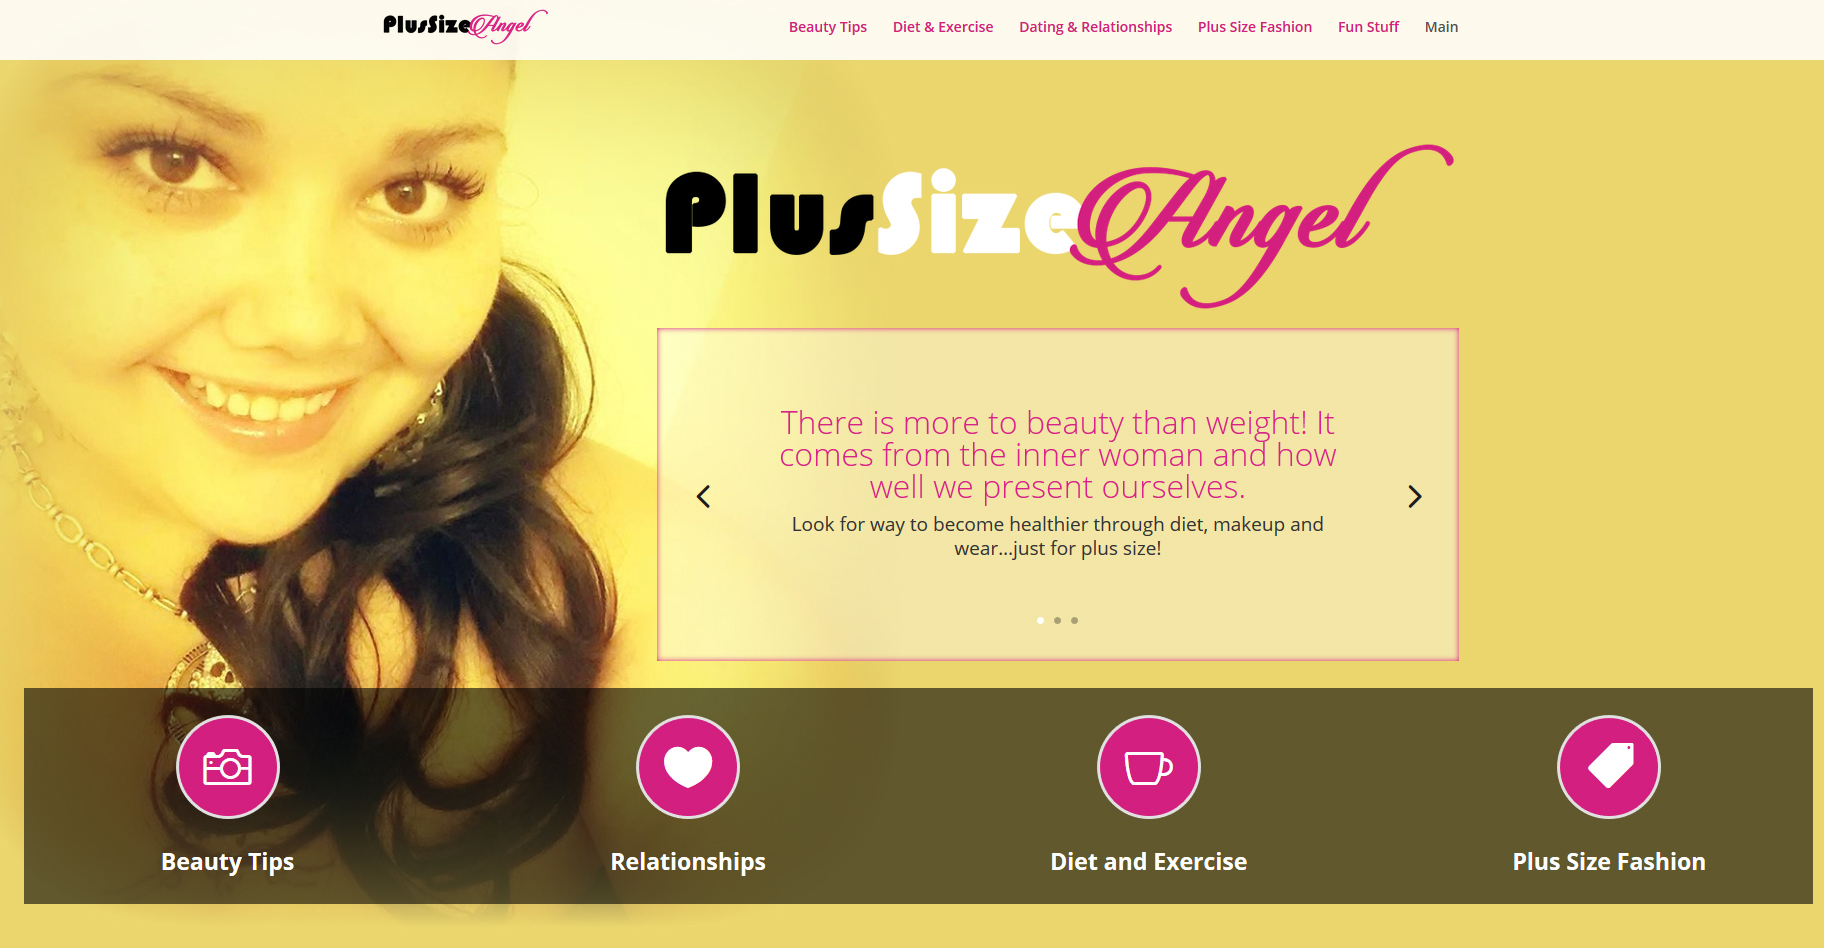 Plus Size Angel